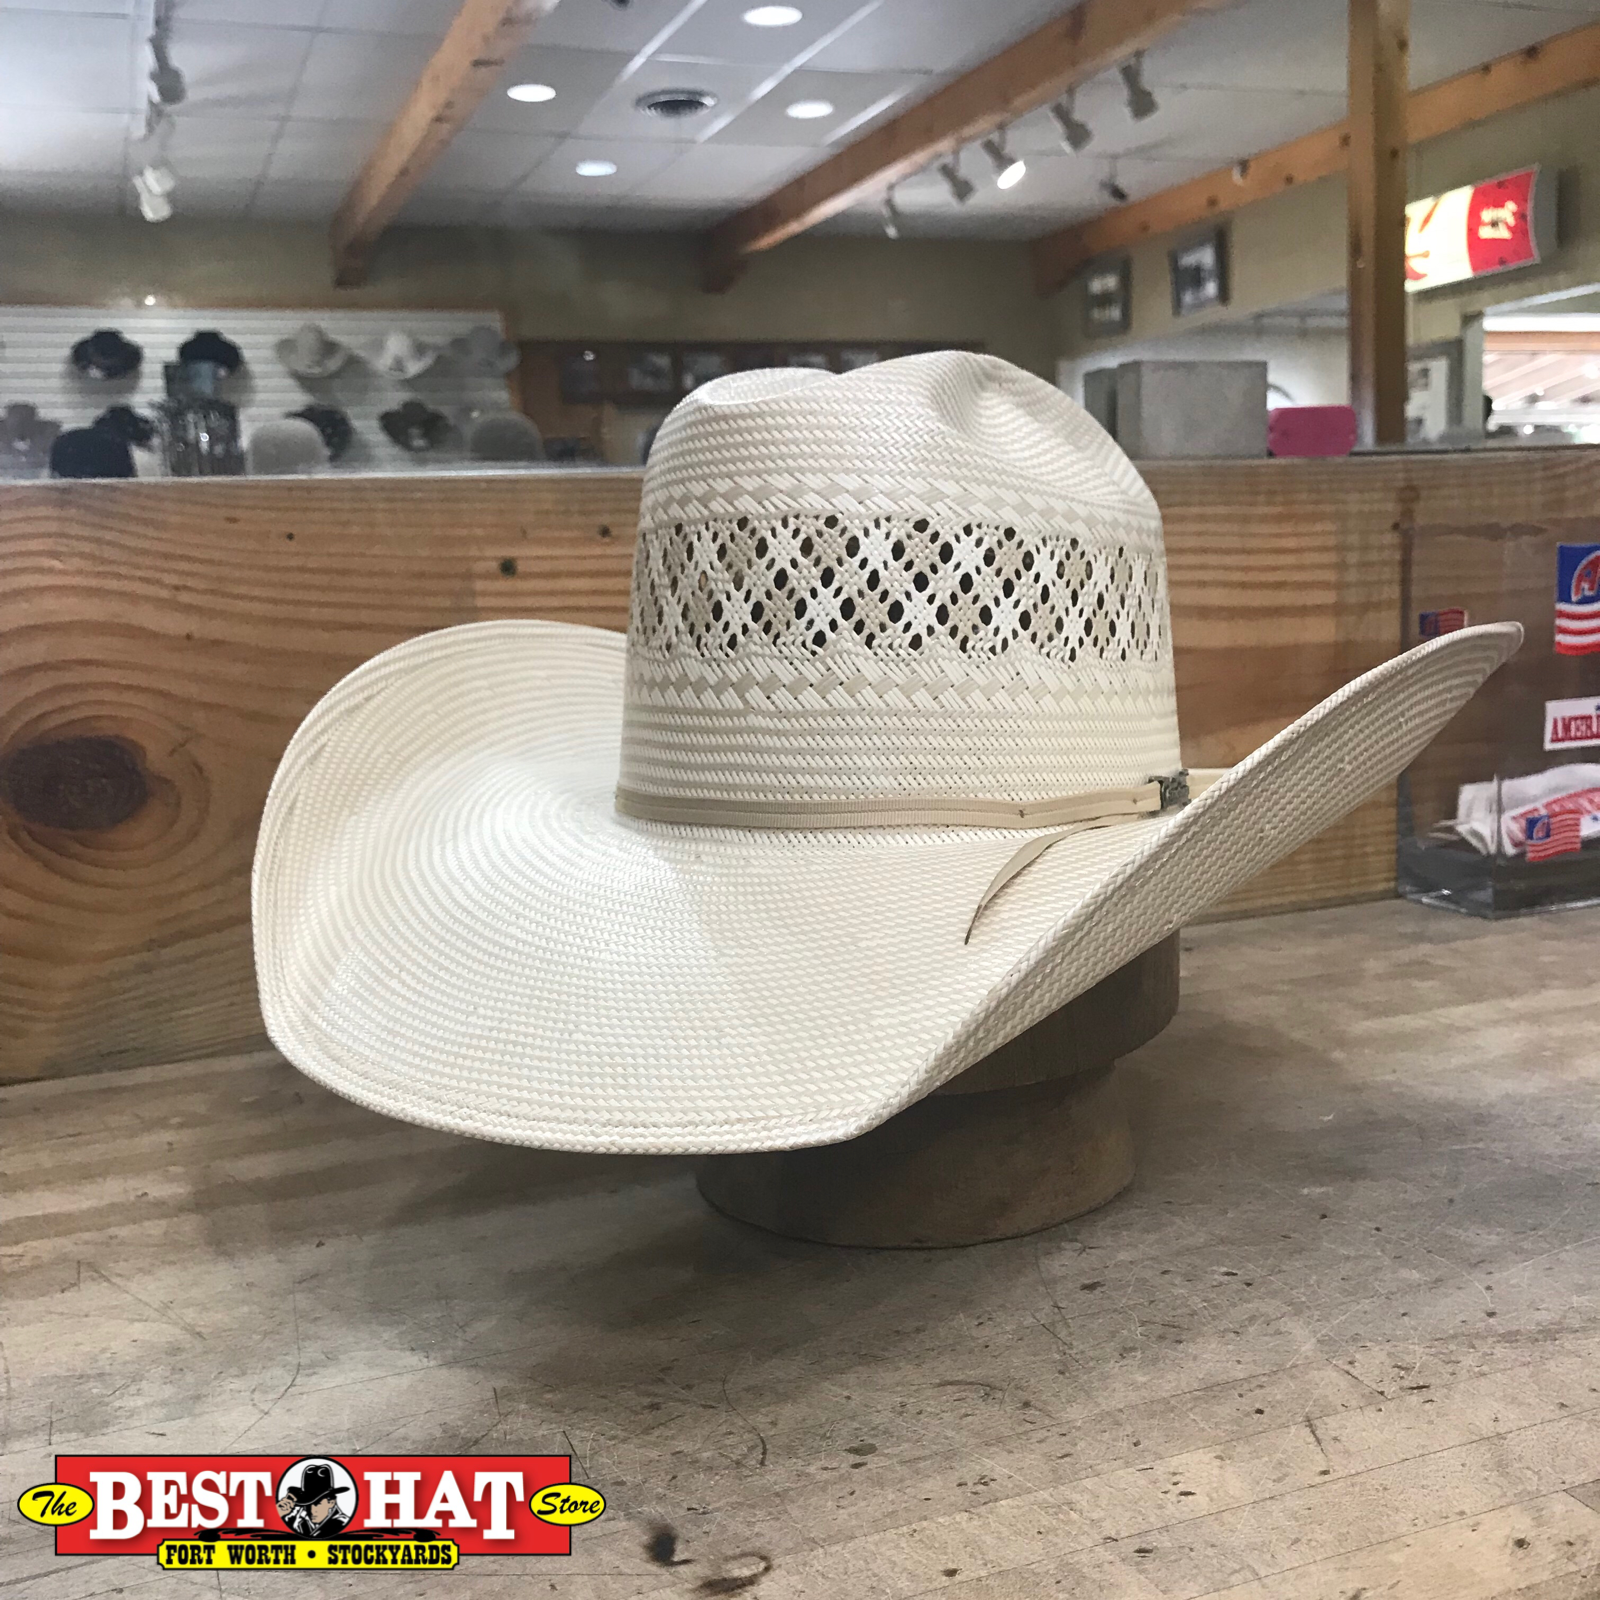 5f00c503fa5 Come getcha the 1011 with a 4 1 2 brim cattleman with cutter bumps 🔥🔥🔥  ... besthat  besthatstore  thebesthatstore americanhatco ...